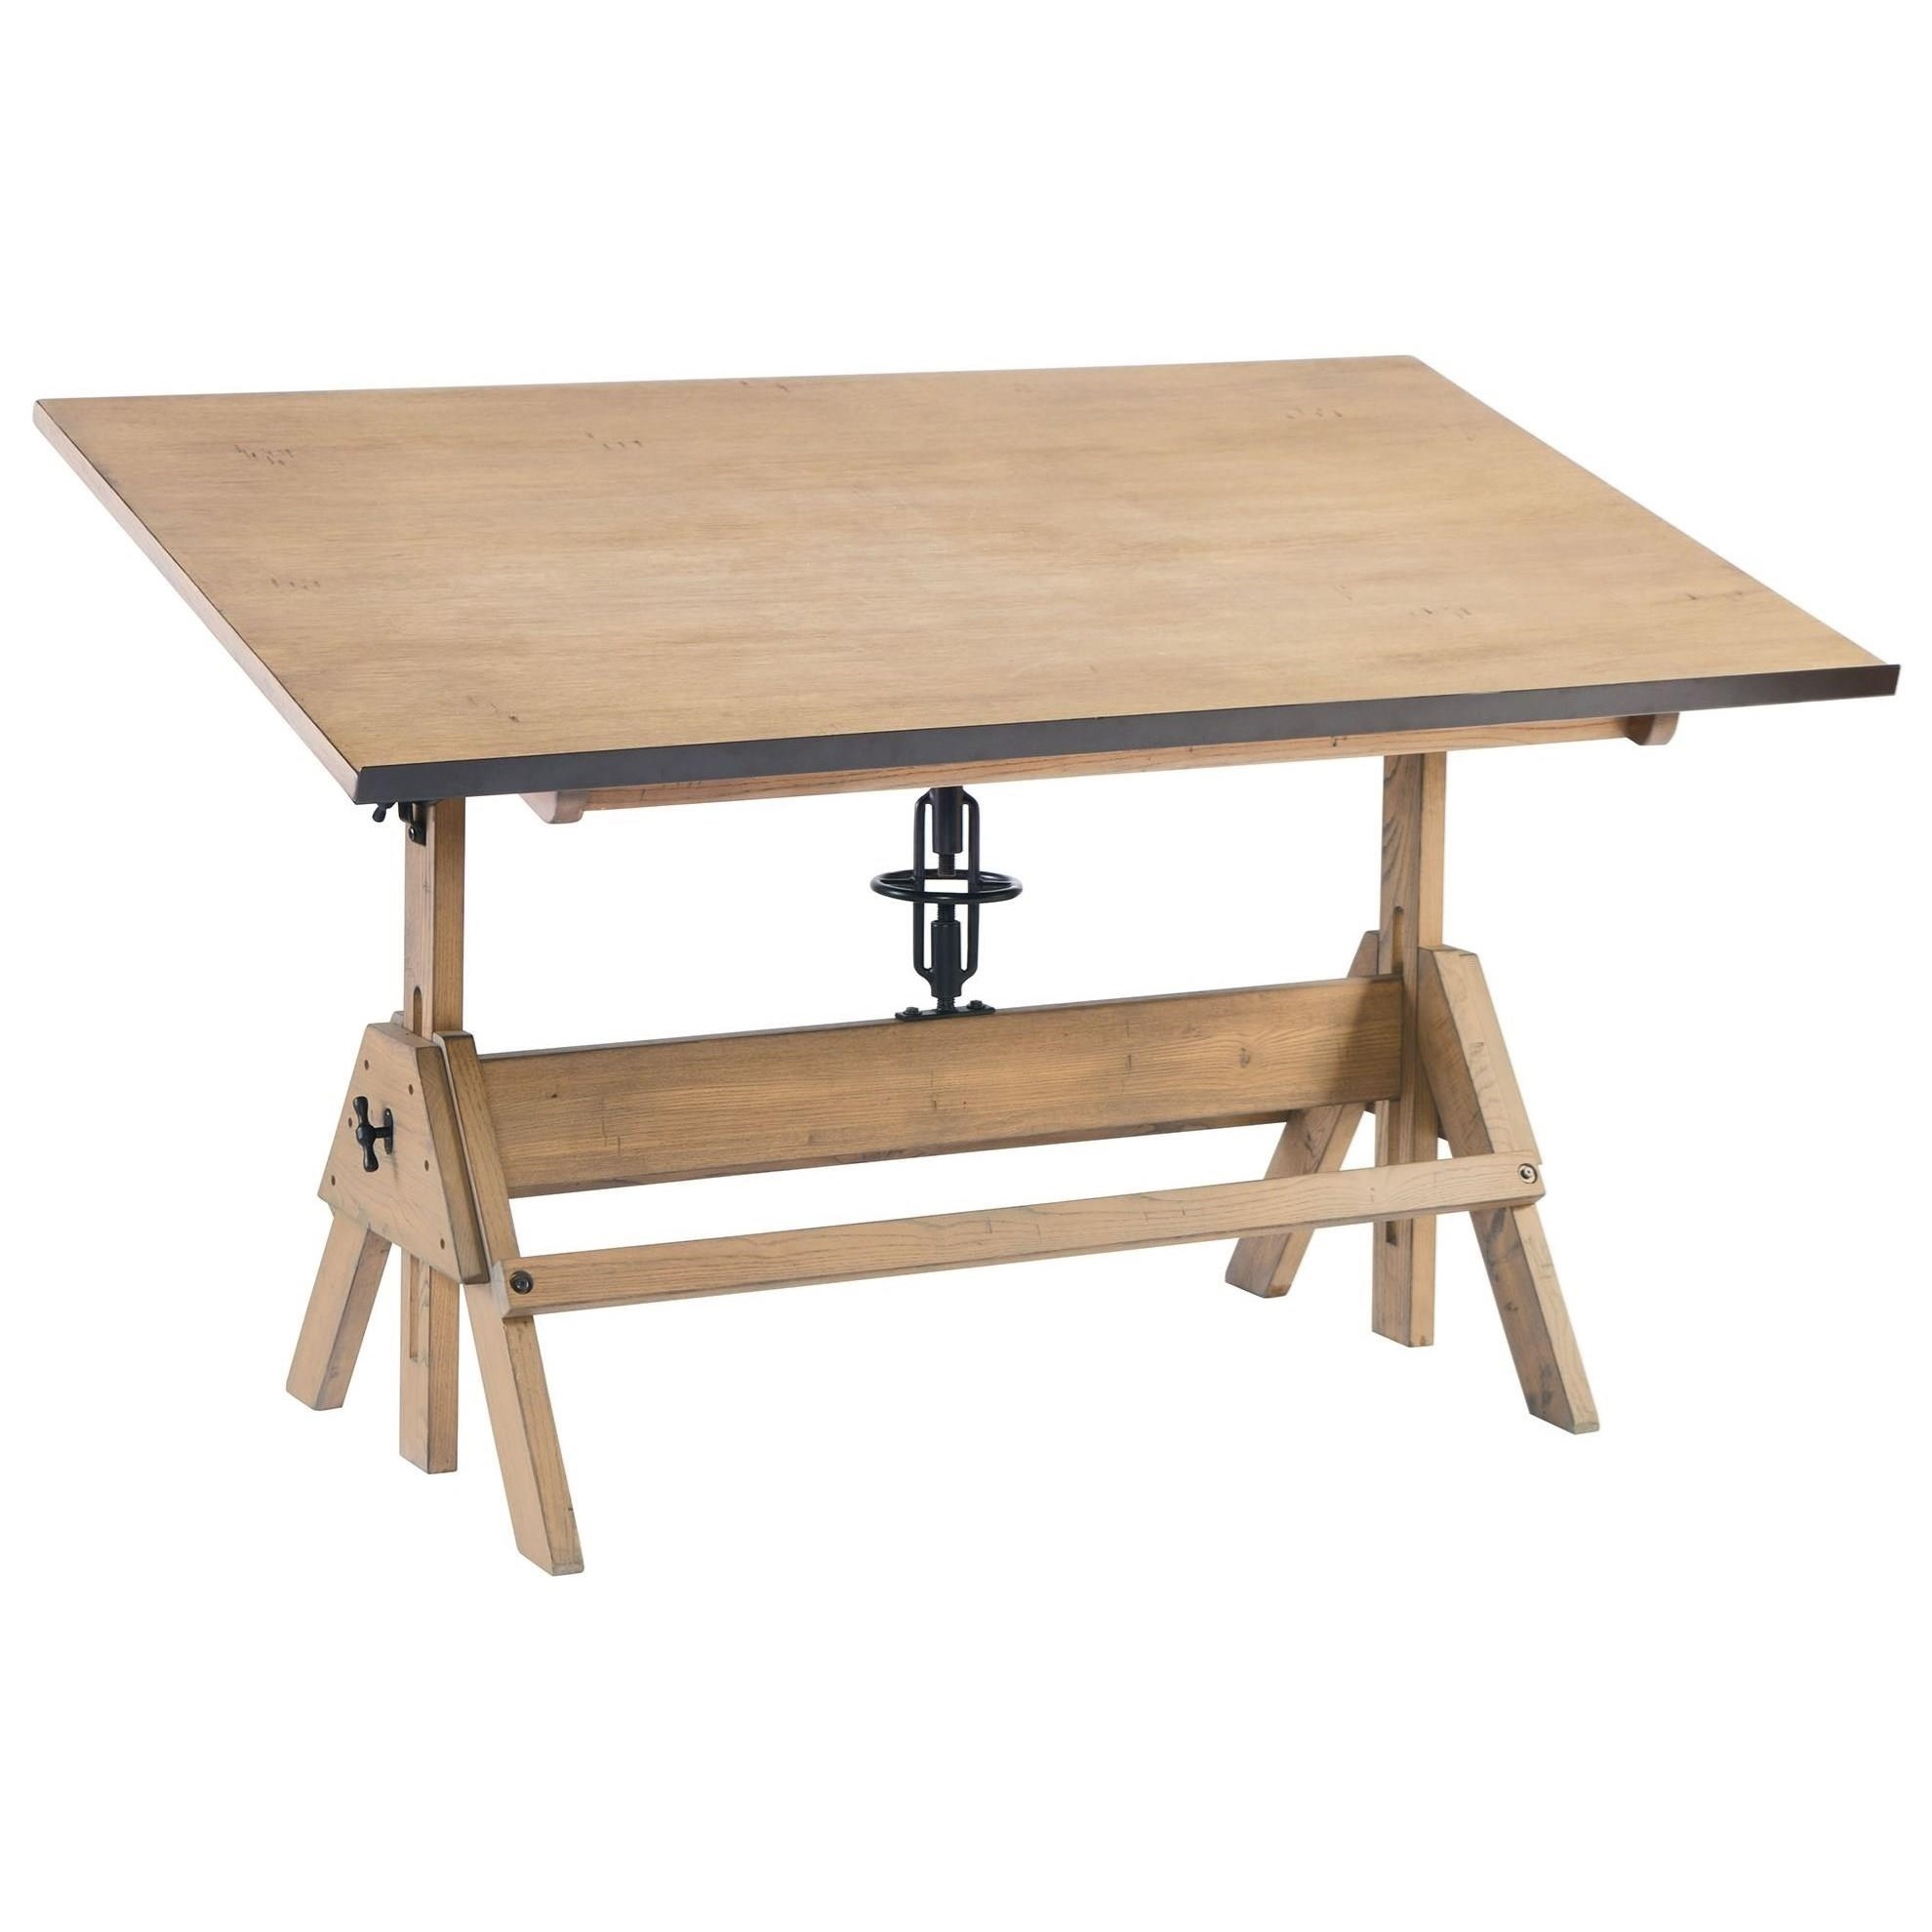 table rolling hayneedle designs drafting deluxe station studio cfm product